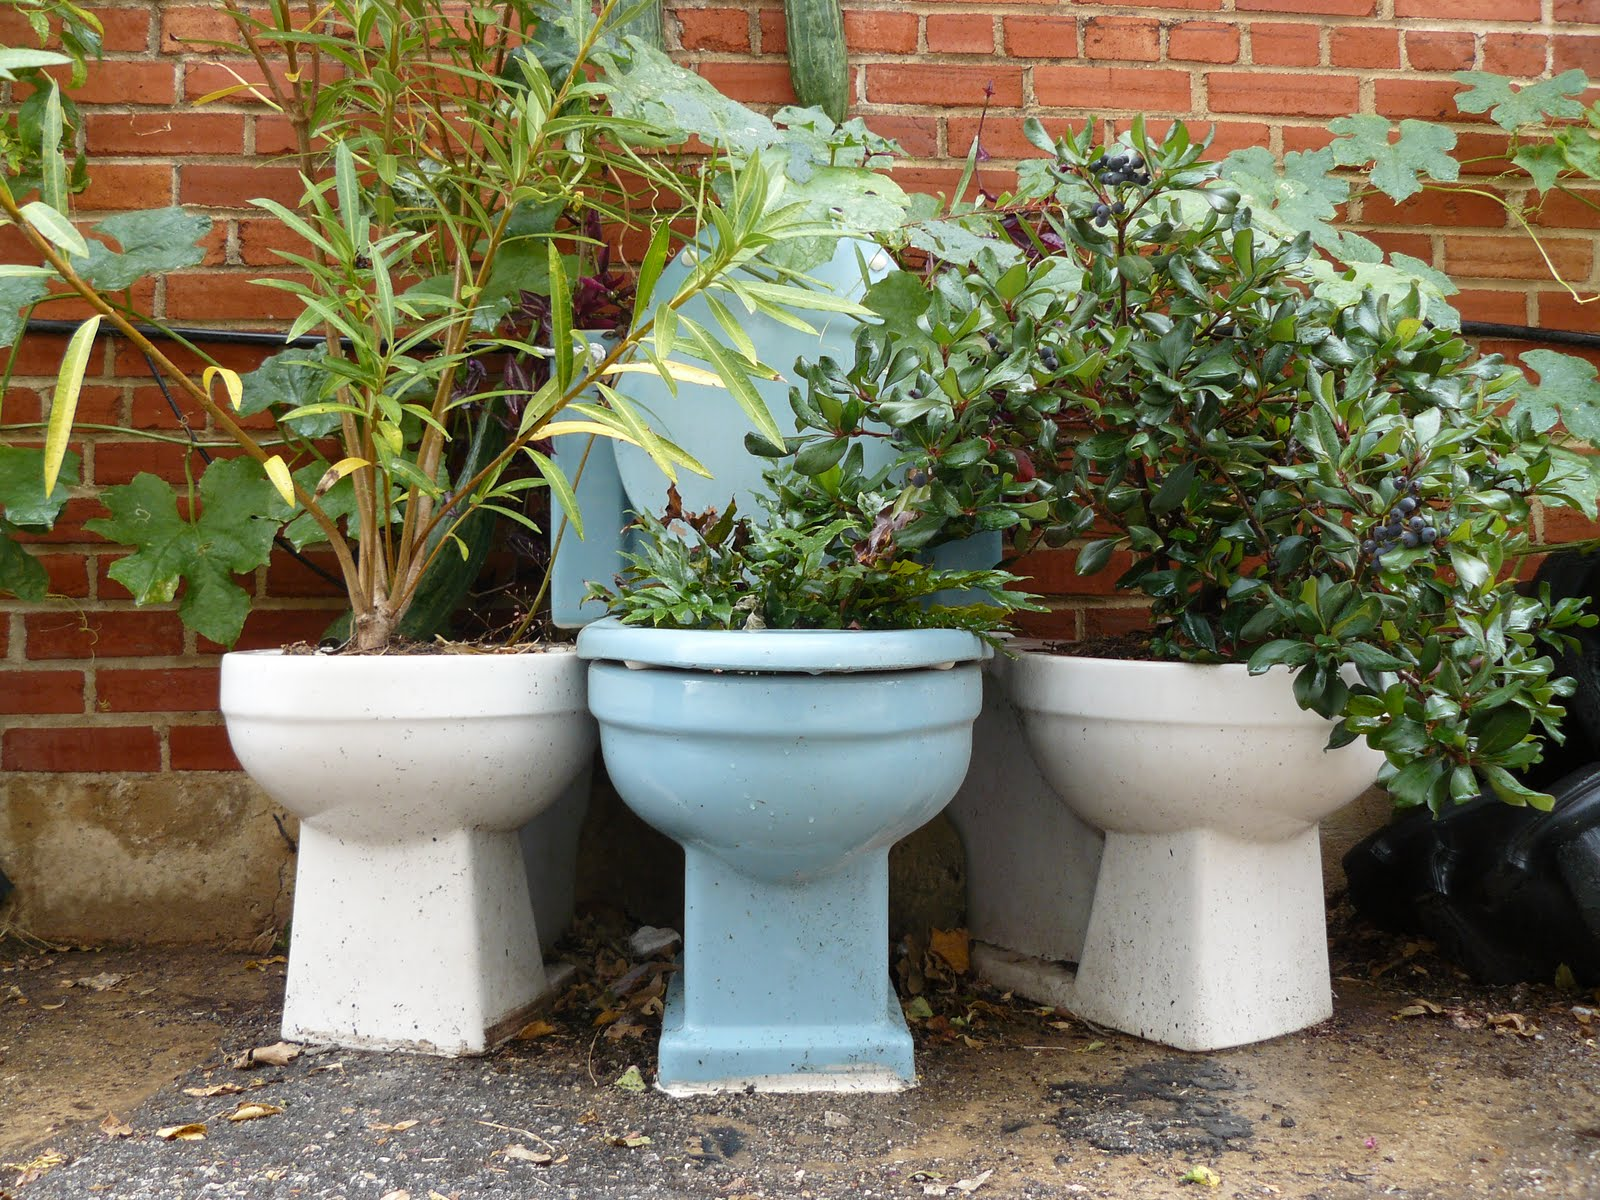 What To Do With An Old Toilet: 8 Fun Ideas For Repurposing Your Throne